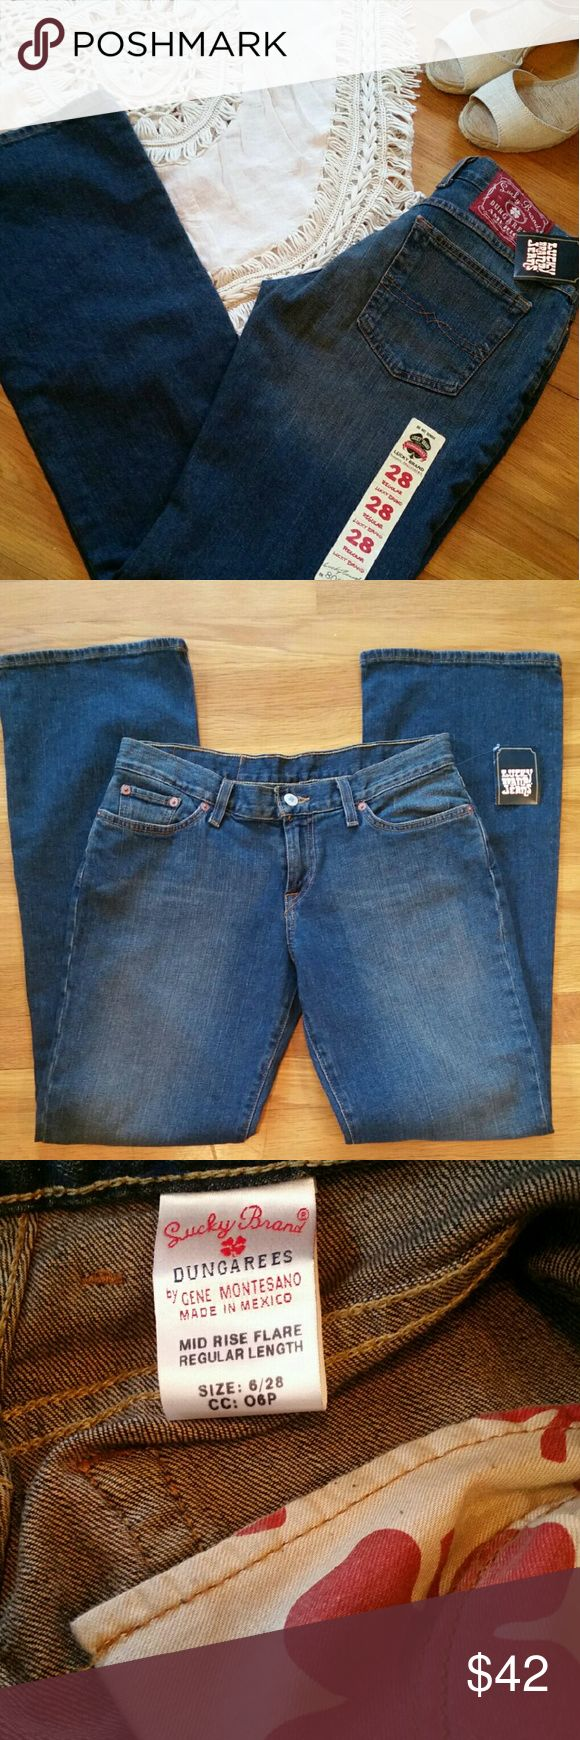 "~HP~ NEW!! Lucky Brand Dungaree Jeans New with tags, Lucky Dungaree jeans, mid-rise flare, size 6 (28), with 31"" inseam. Host pick. Happy to discount bundles!!! Lucky Brand Jeans Flare & Wide Leg"